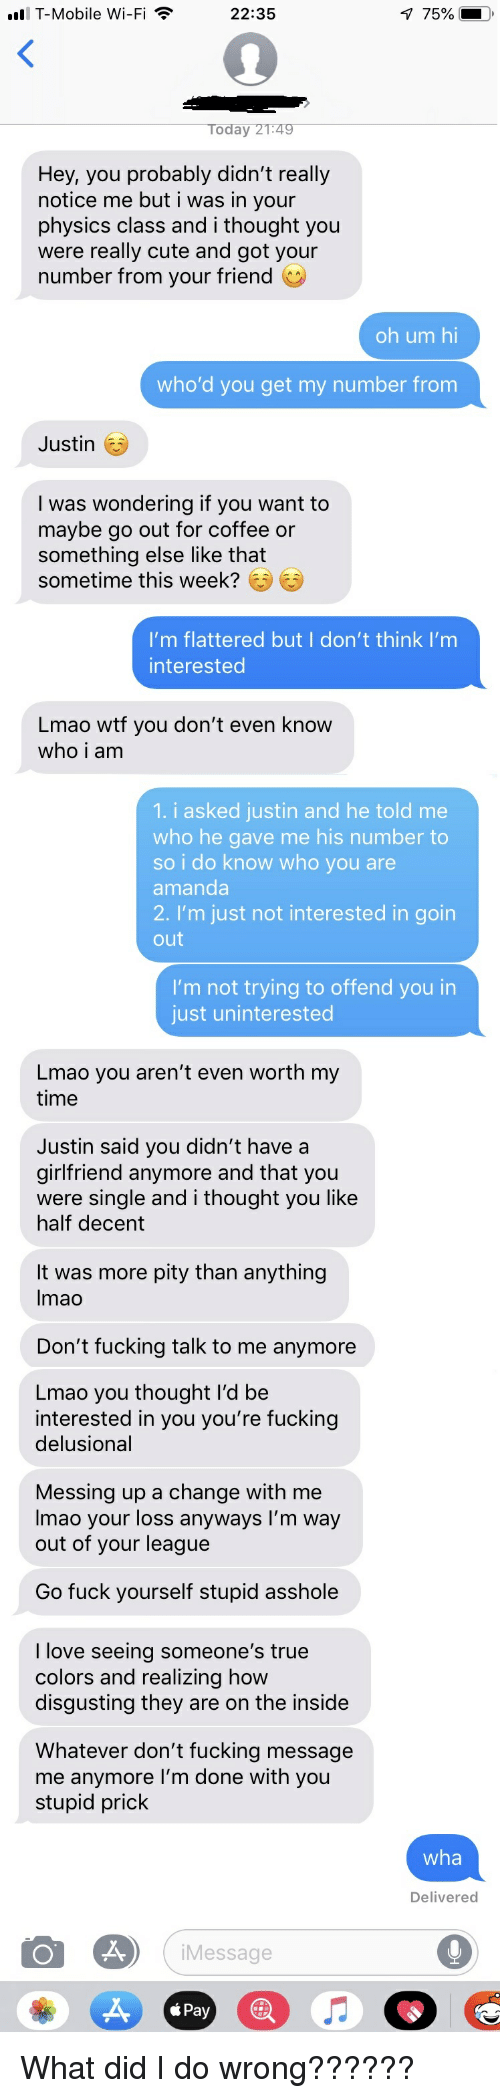 he gave me his number is he interested